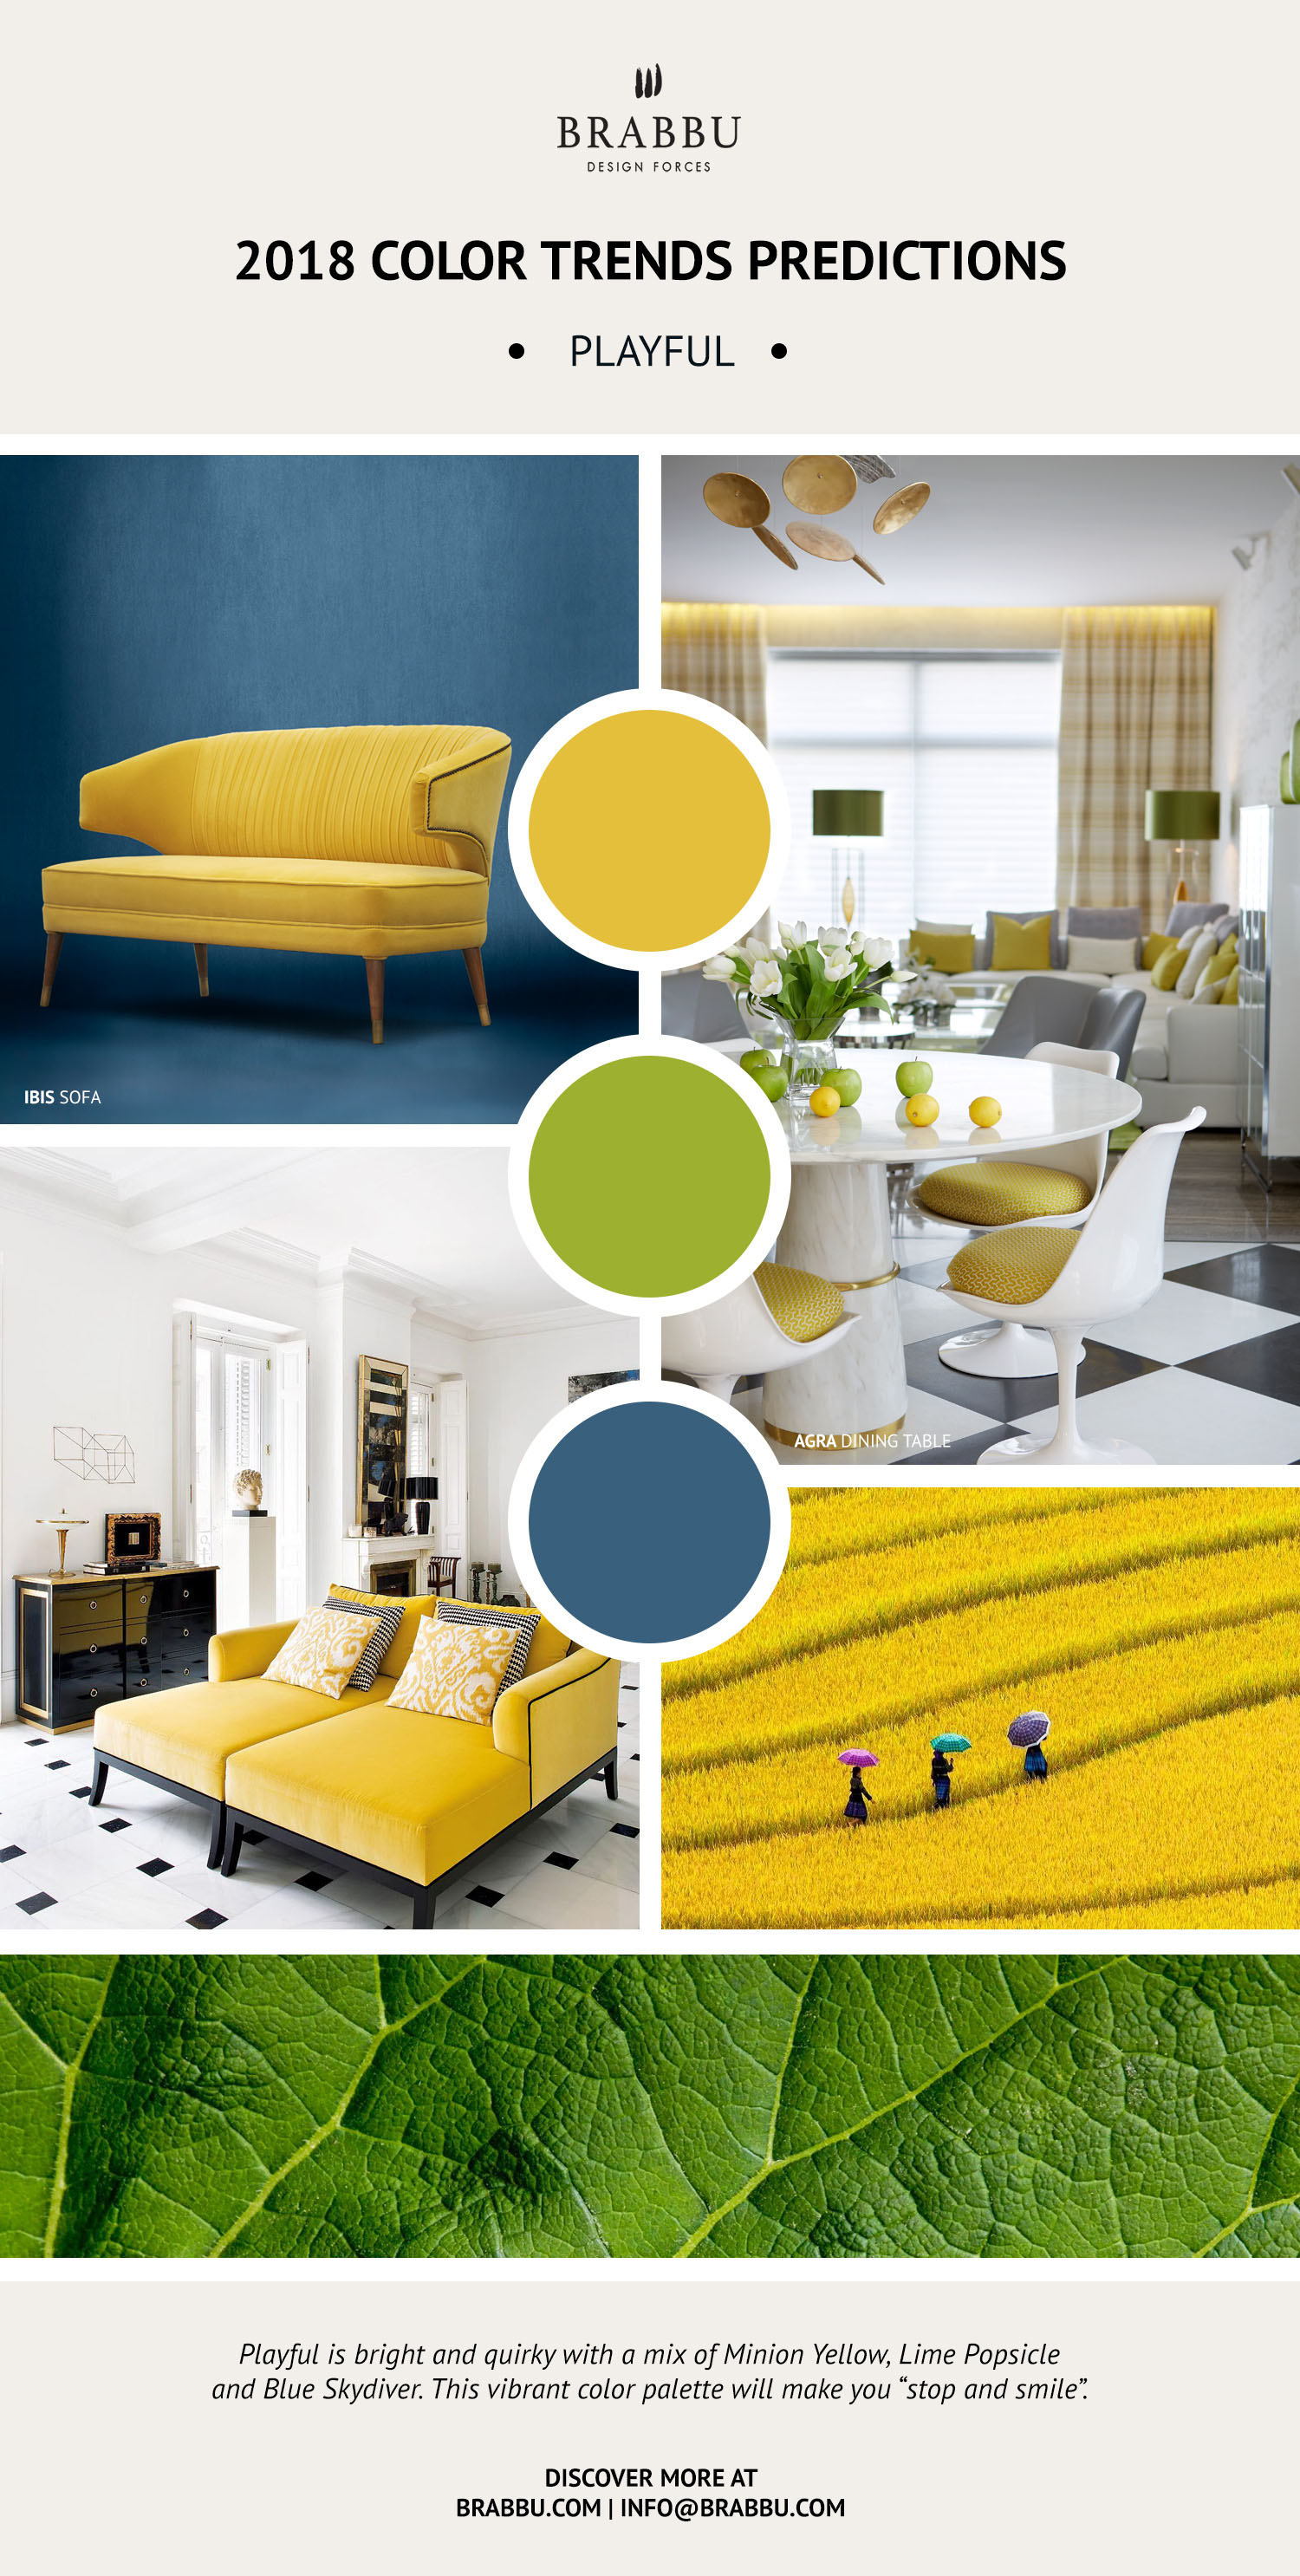 Pantone Color Trend Predictions For 2018 color trend Pantone Color Trend Predictions For 2018 4 1